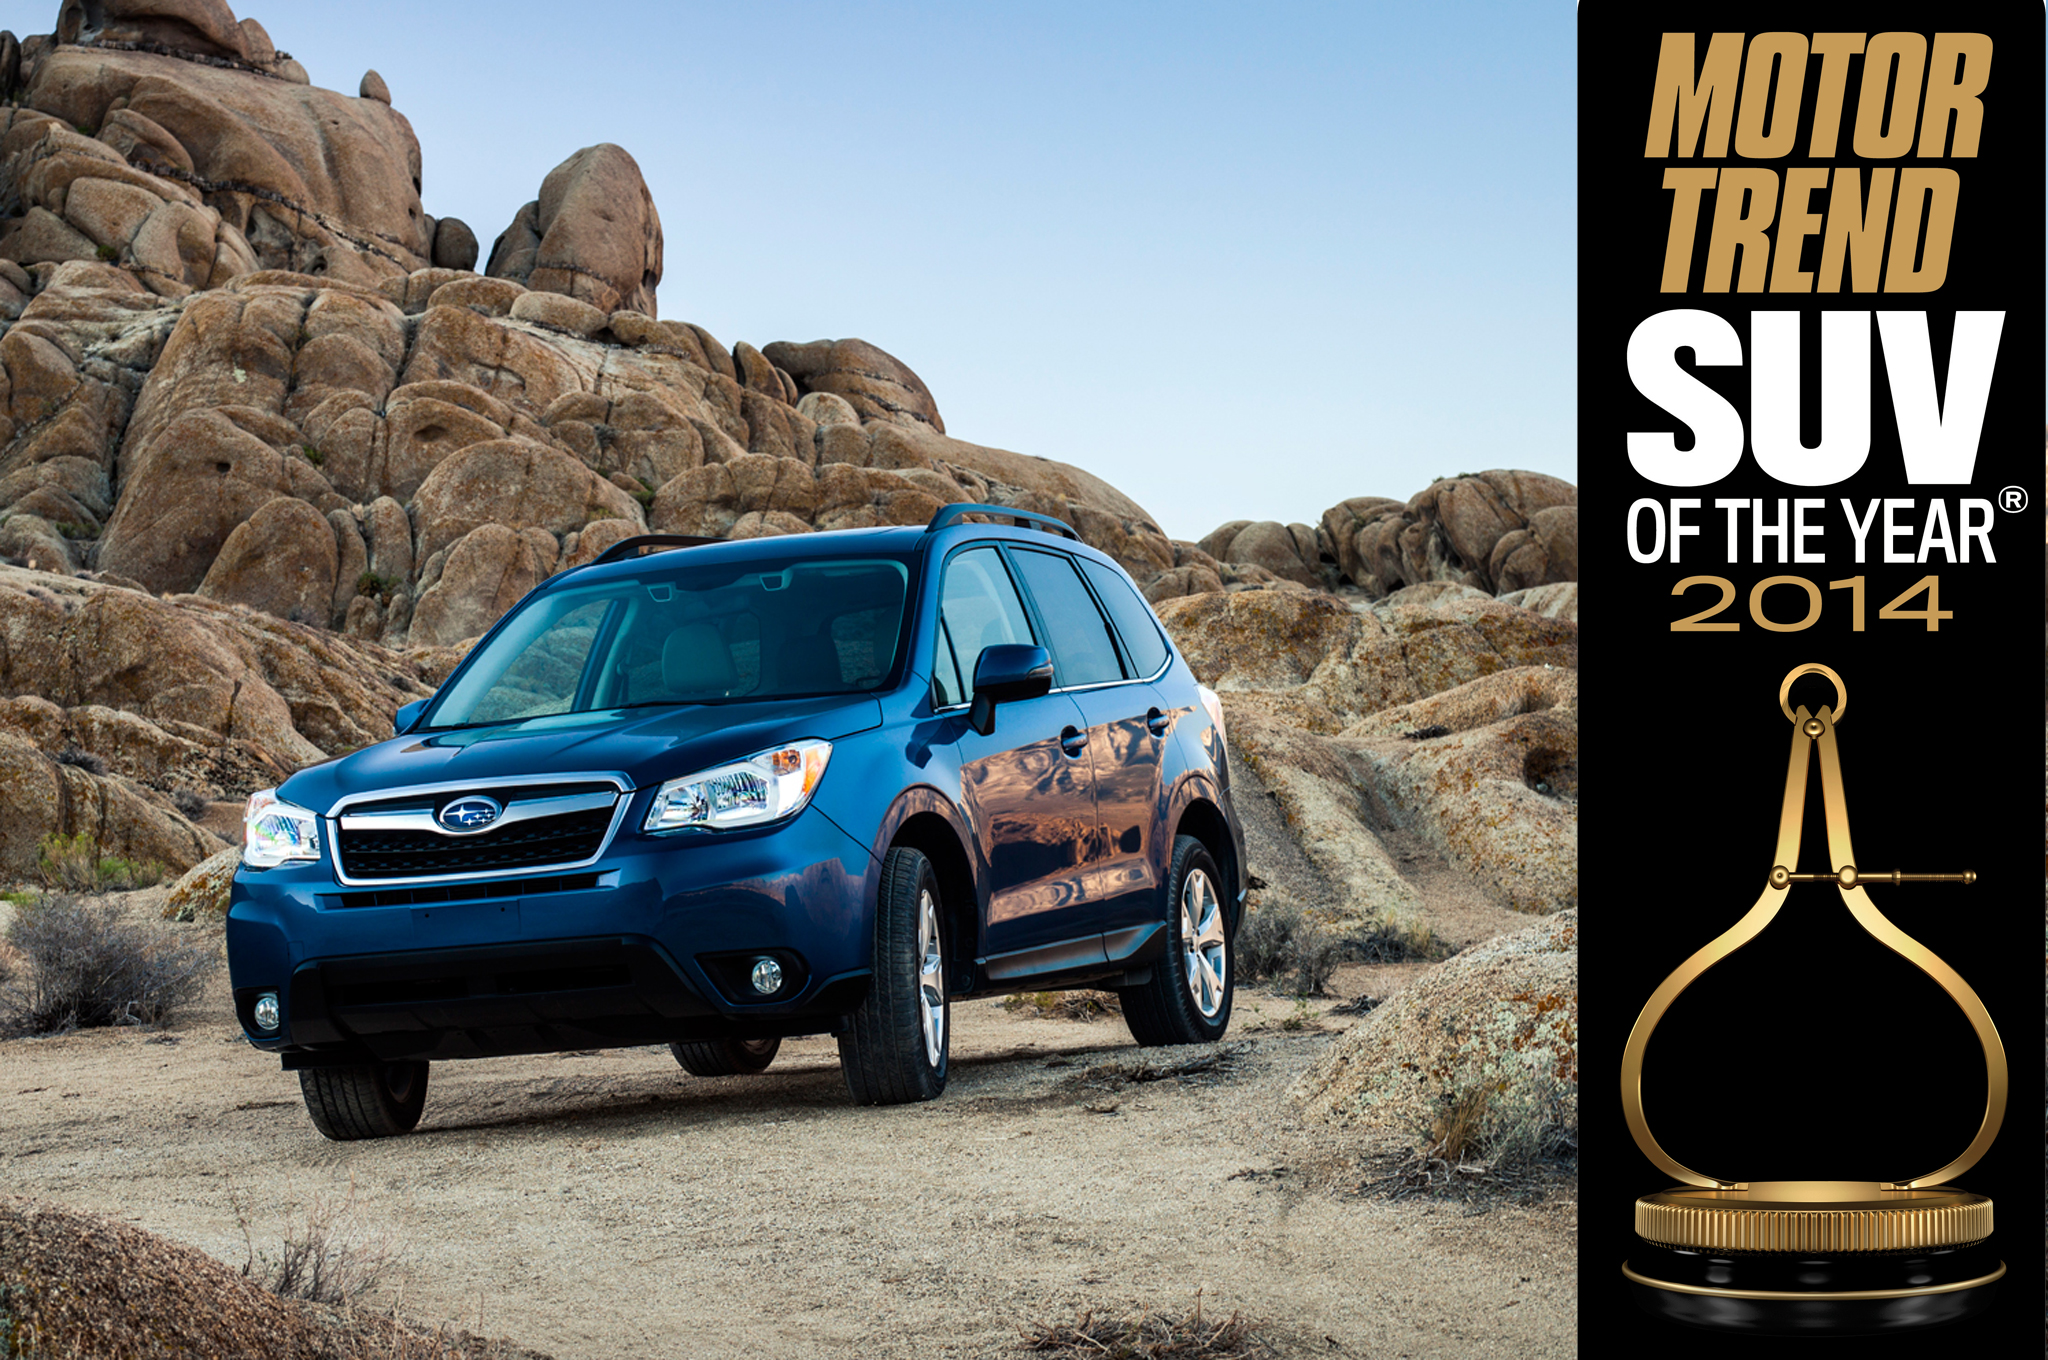 2014 motor trend suv of the year subaru forester club for Motor trend crossover of the year